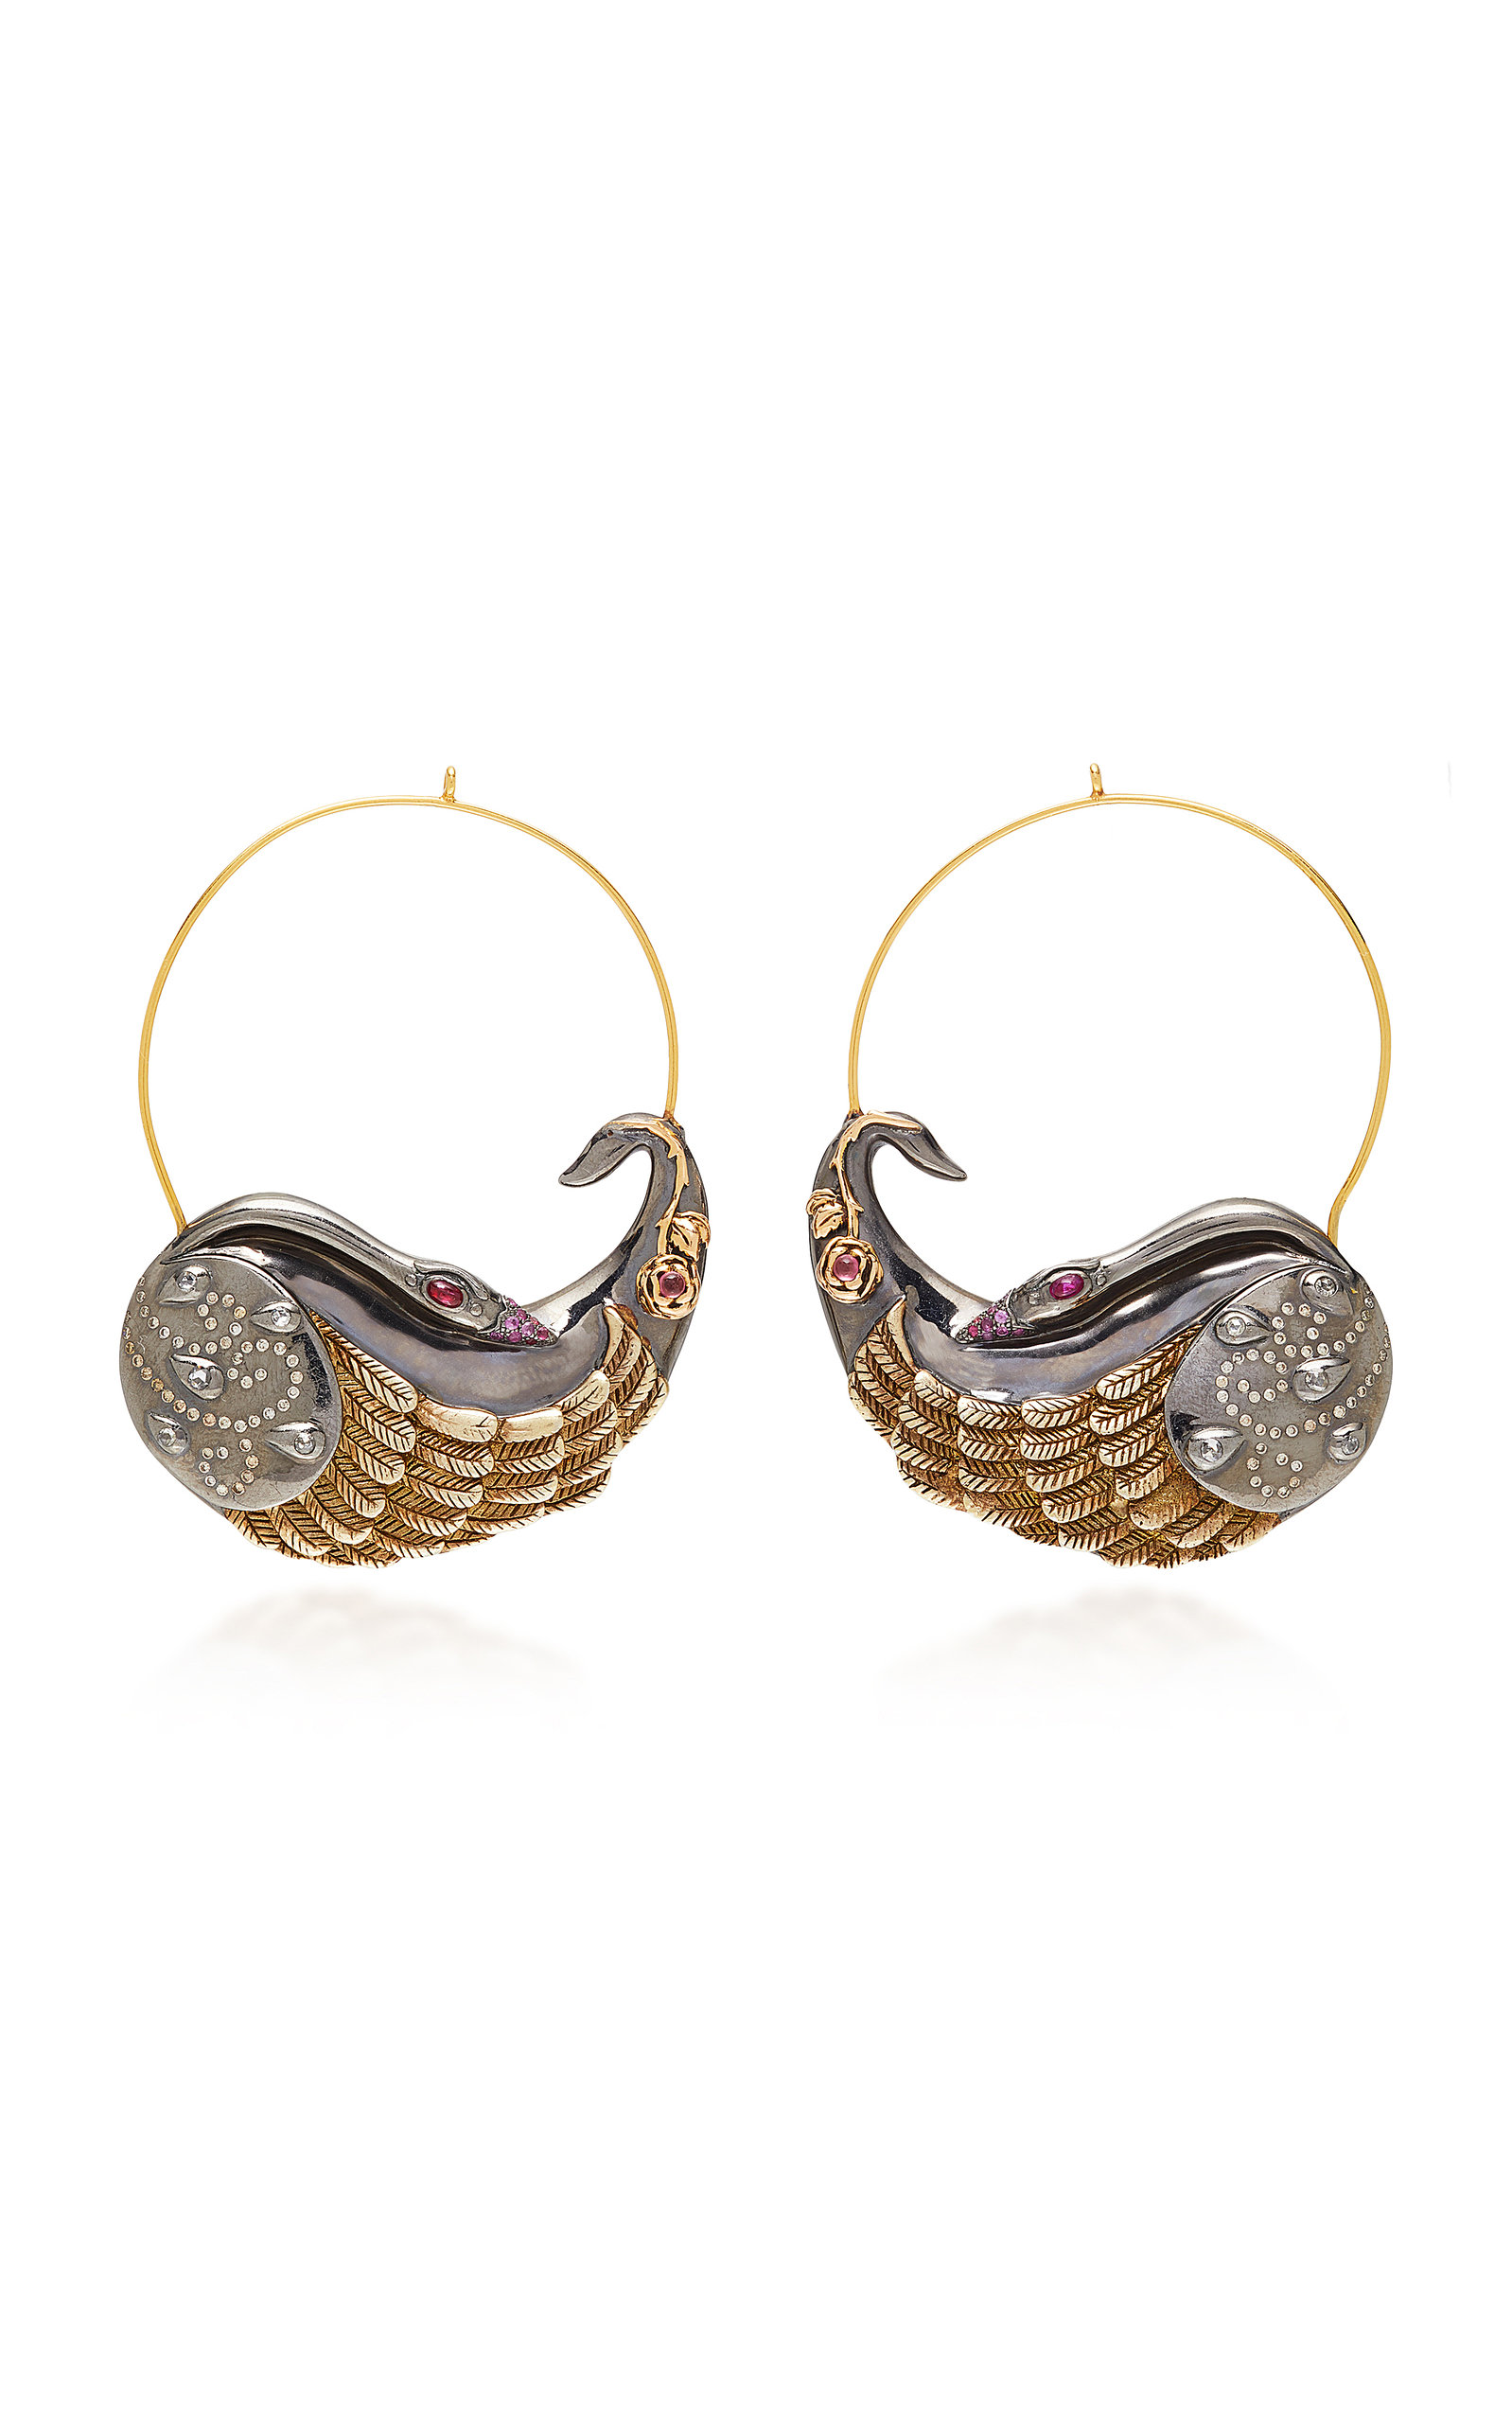 ONE-OF-A-KIND LARGE SWAN HOOPS